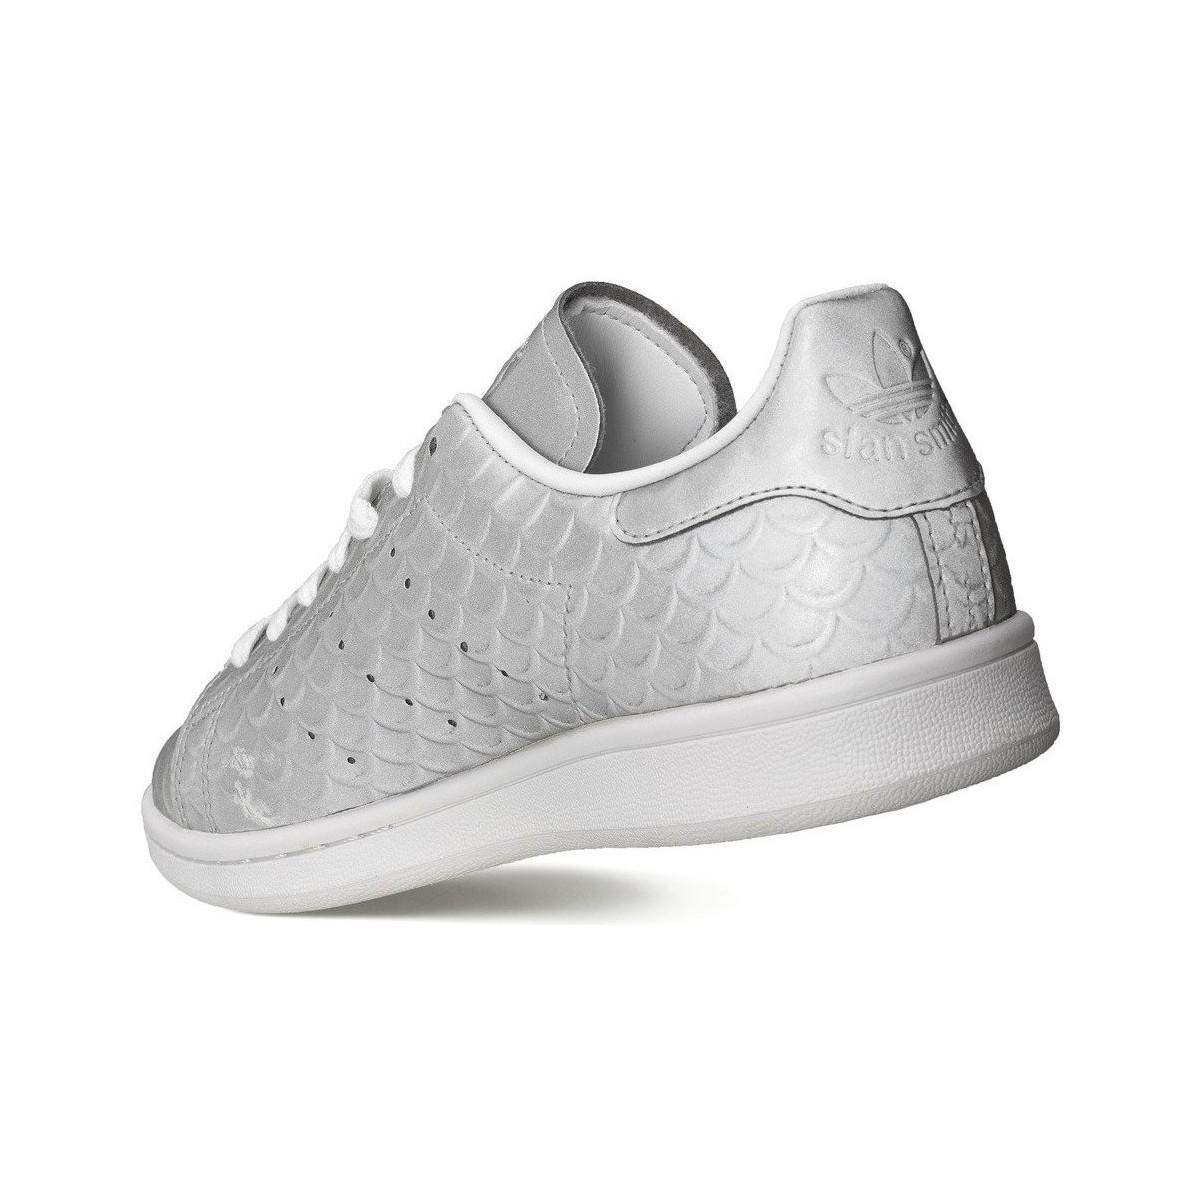 Stan Smith W Chaussures adidas en coloris Gris